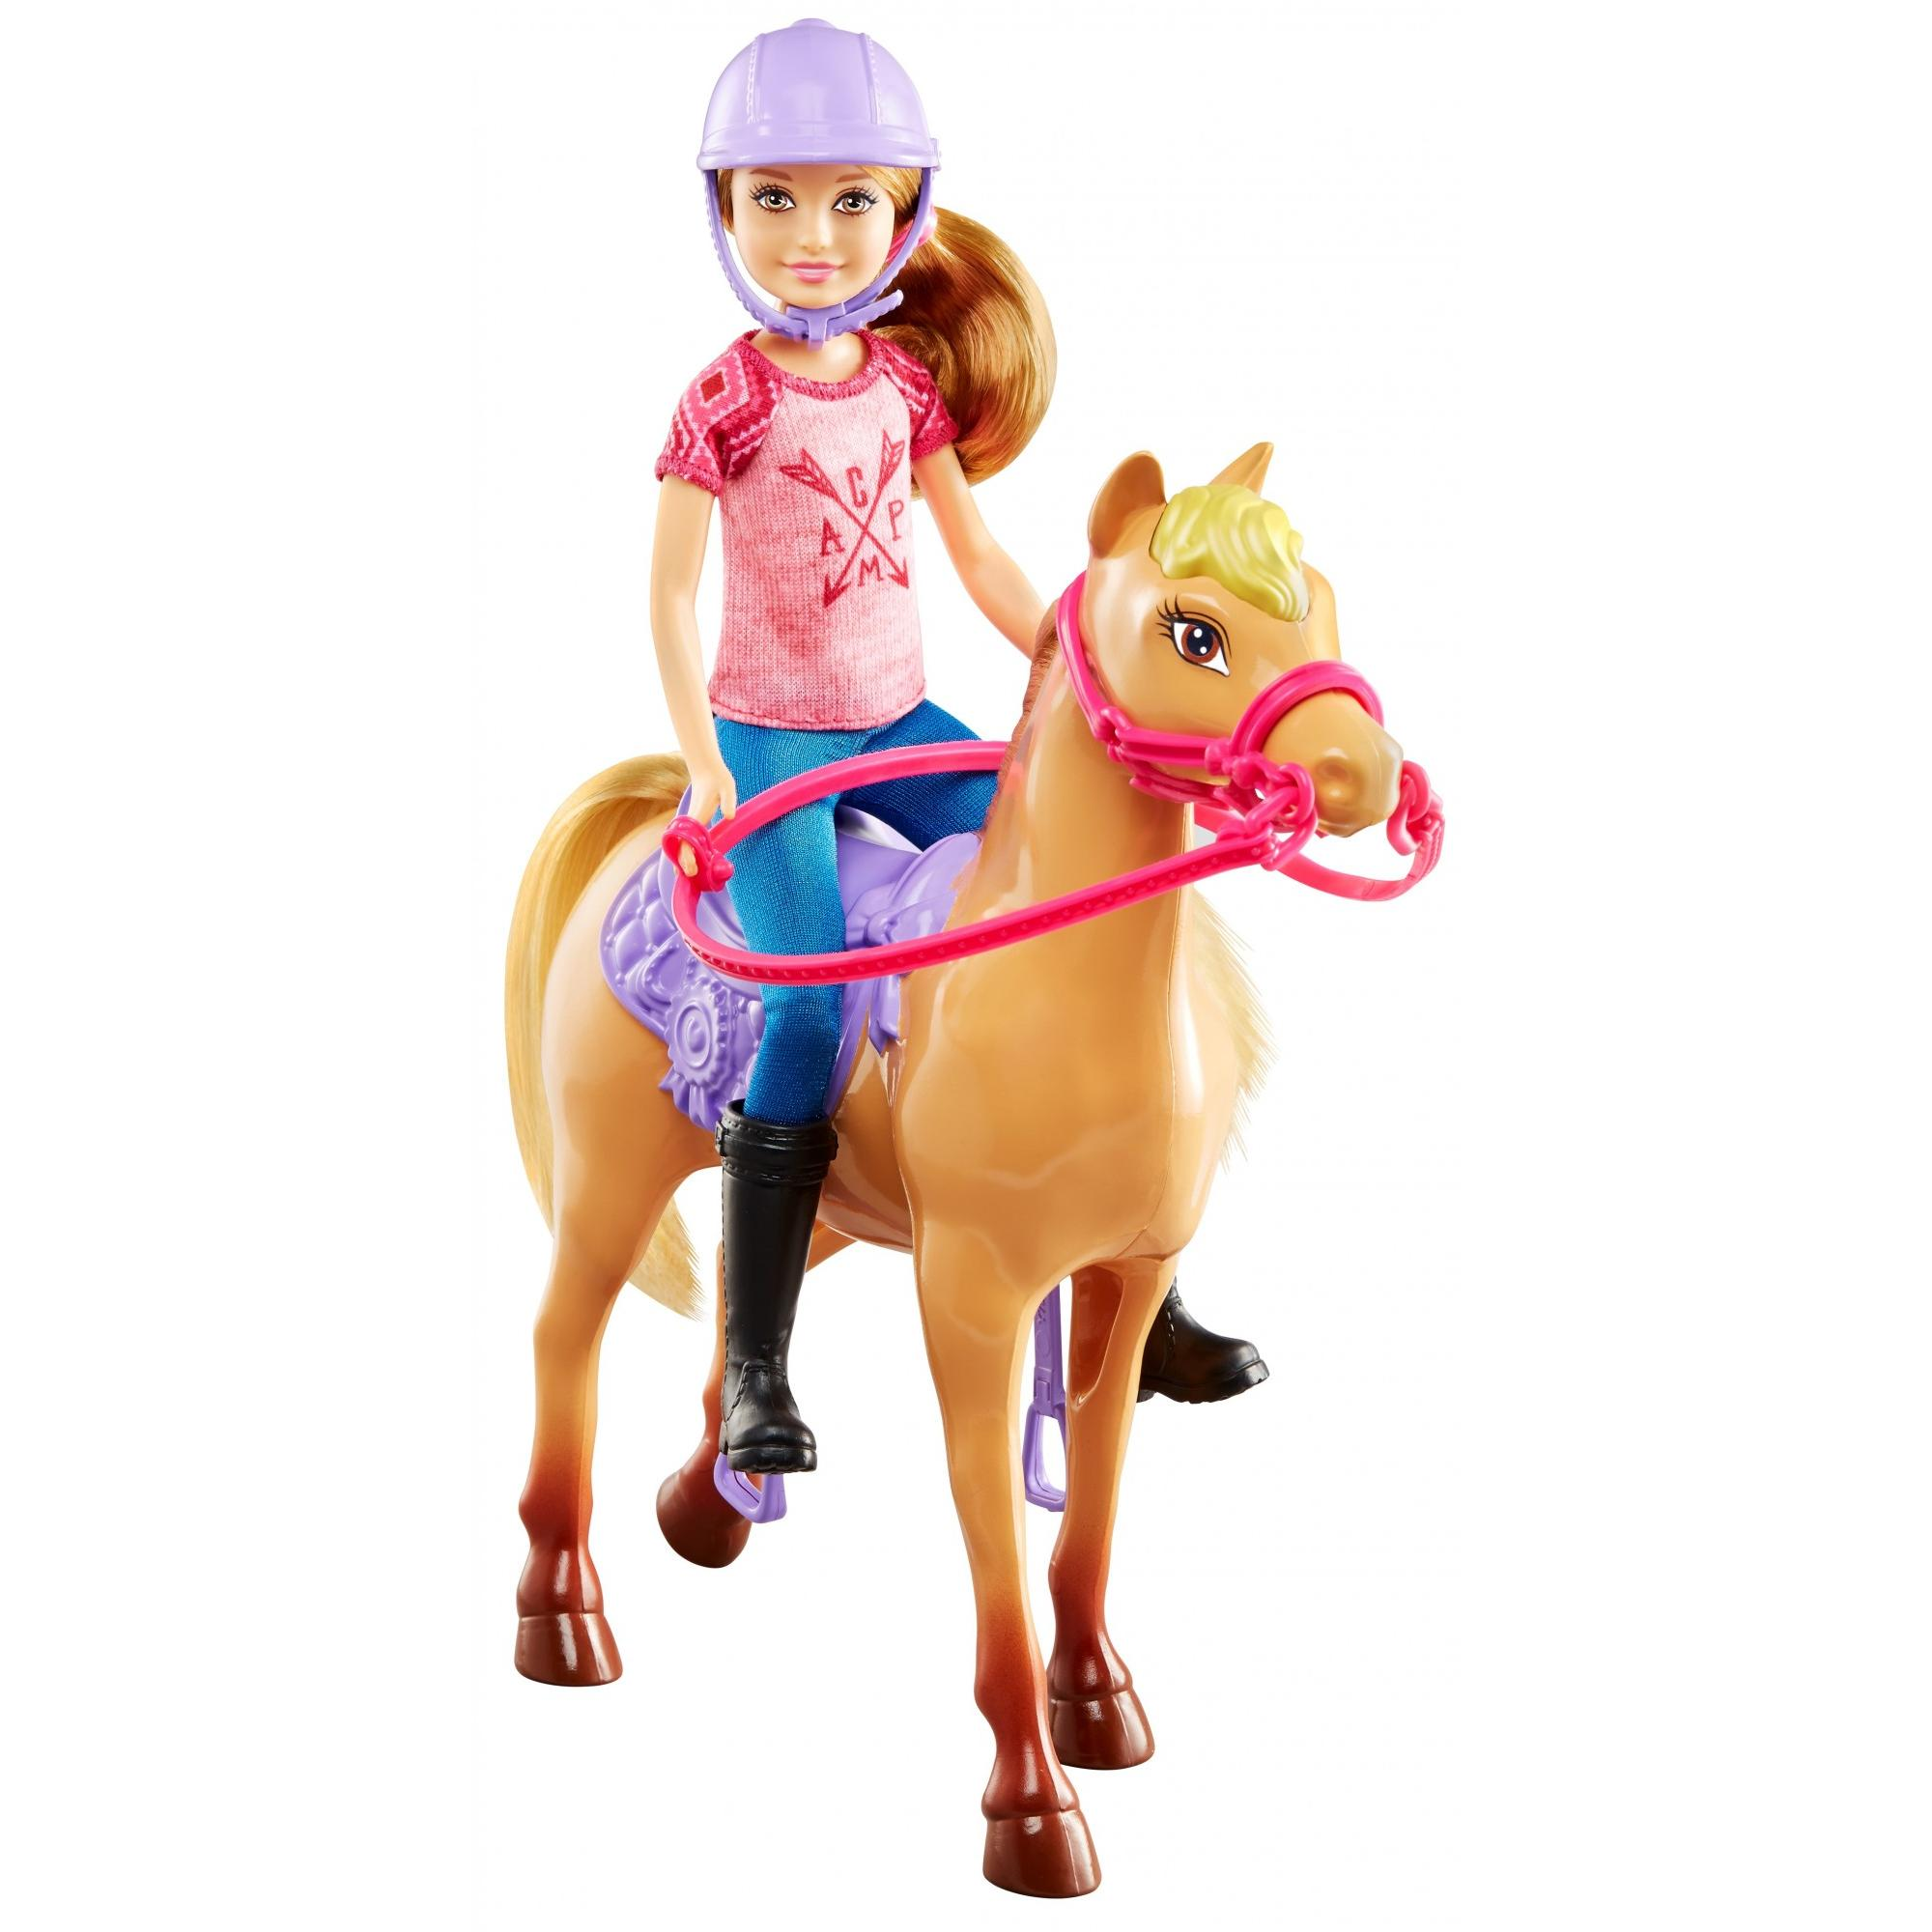 Barbie Camping Fun Stacie Doll & Horse by MATTEL INC.